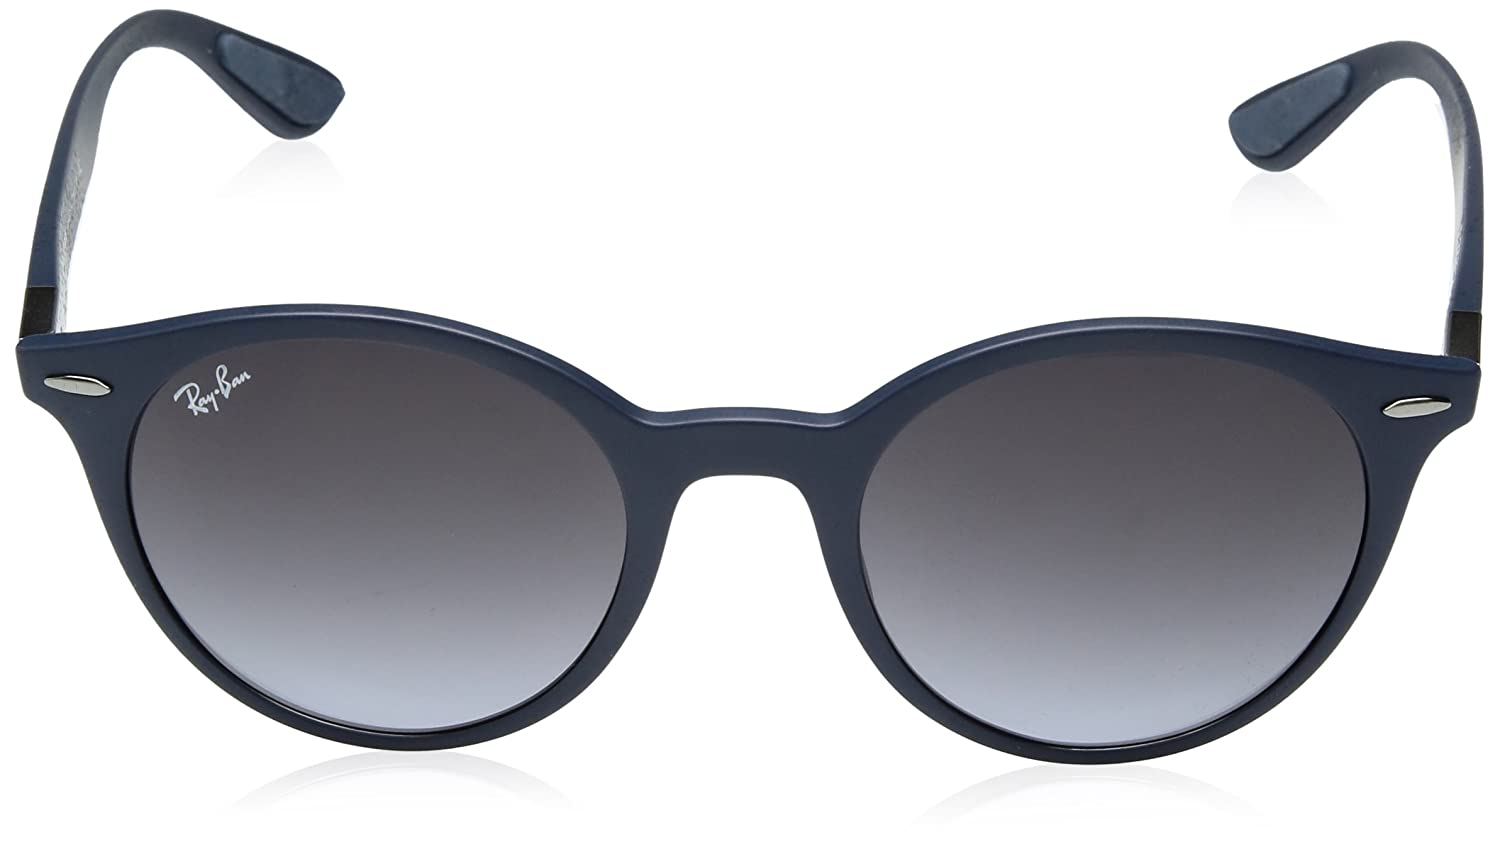 c0a1b79ac57 ... discount code for amazon ray ban plastic unisex round sunglasses matte  black 51 mm clothing 7f95a ...